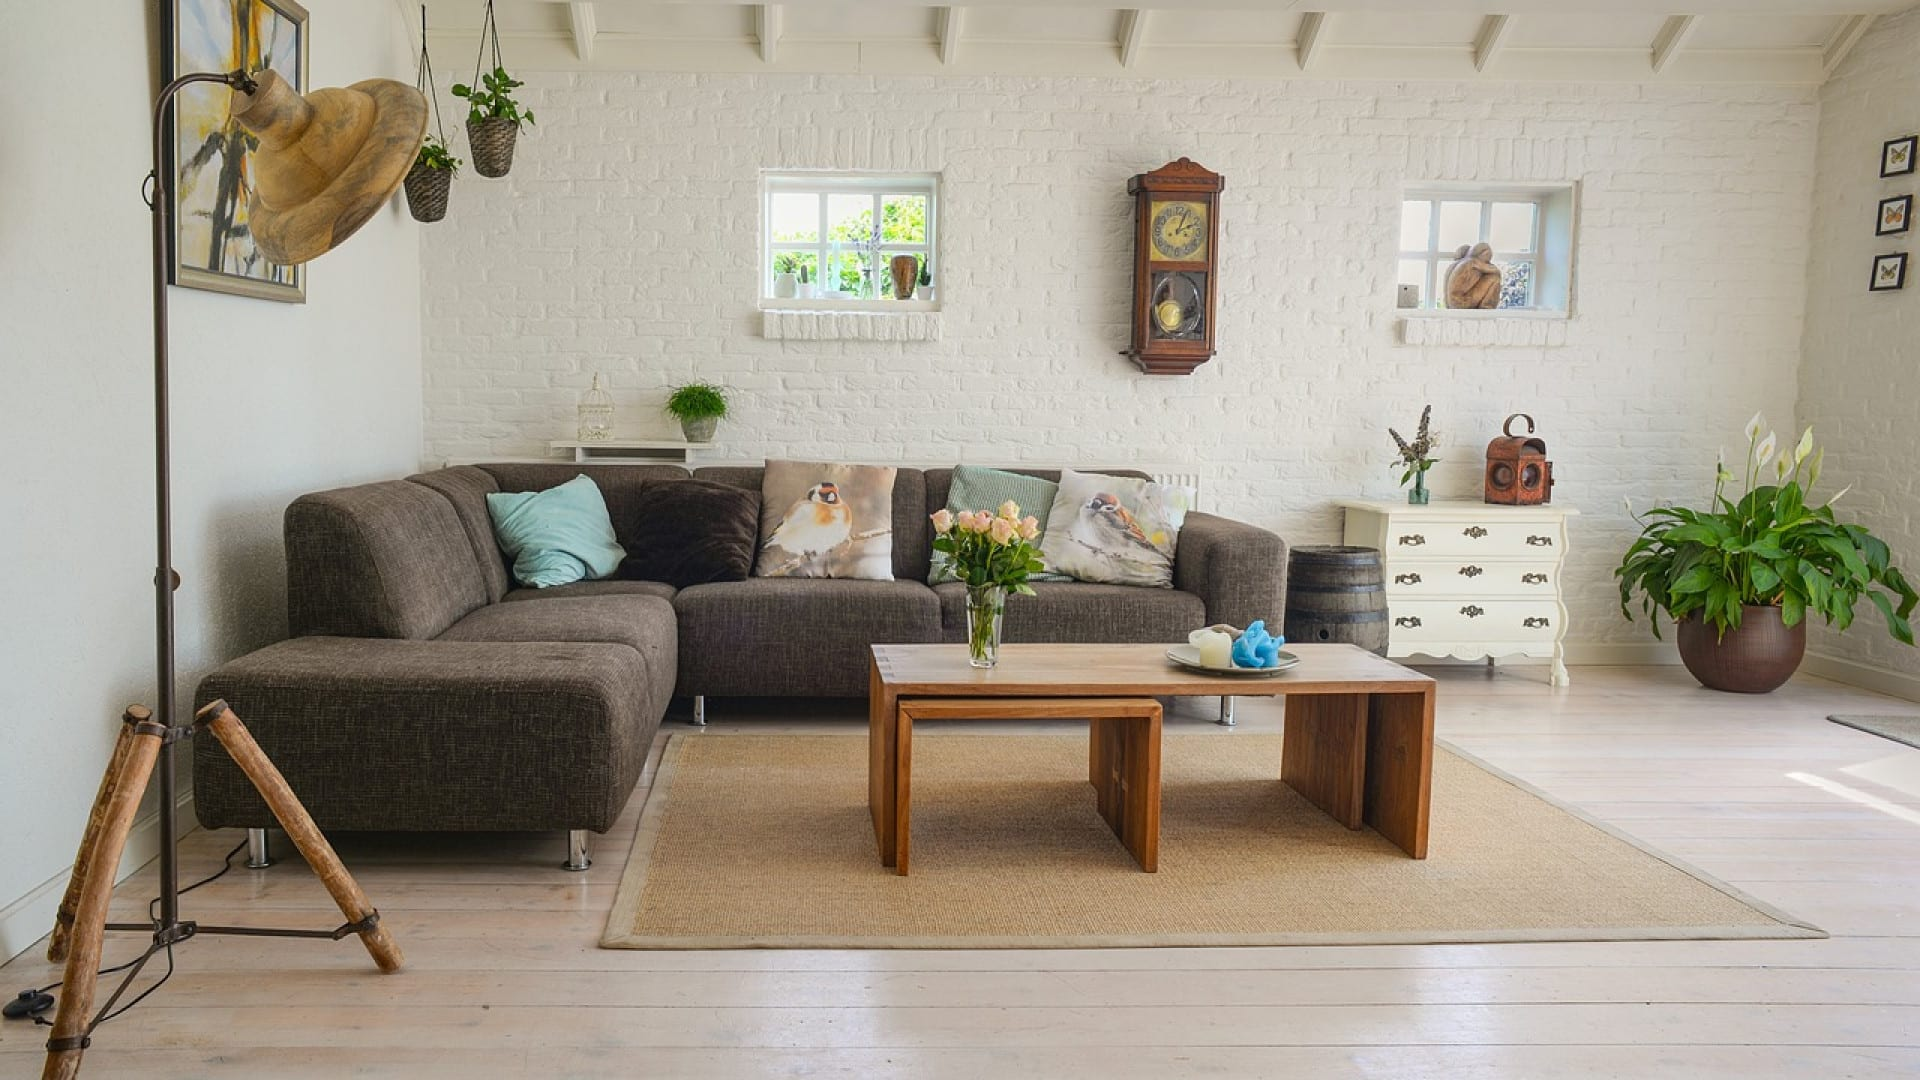 Pourquoi opter pour du home staging?